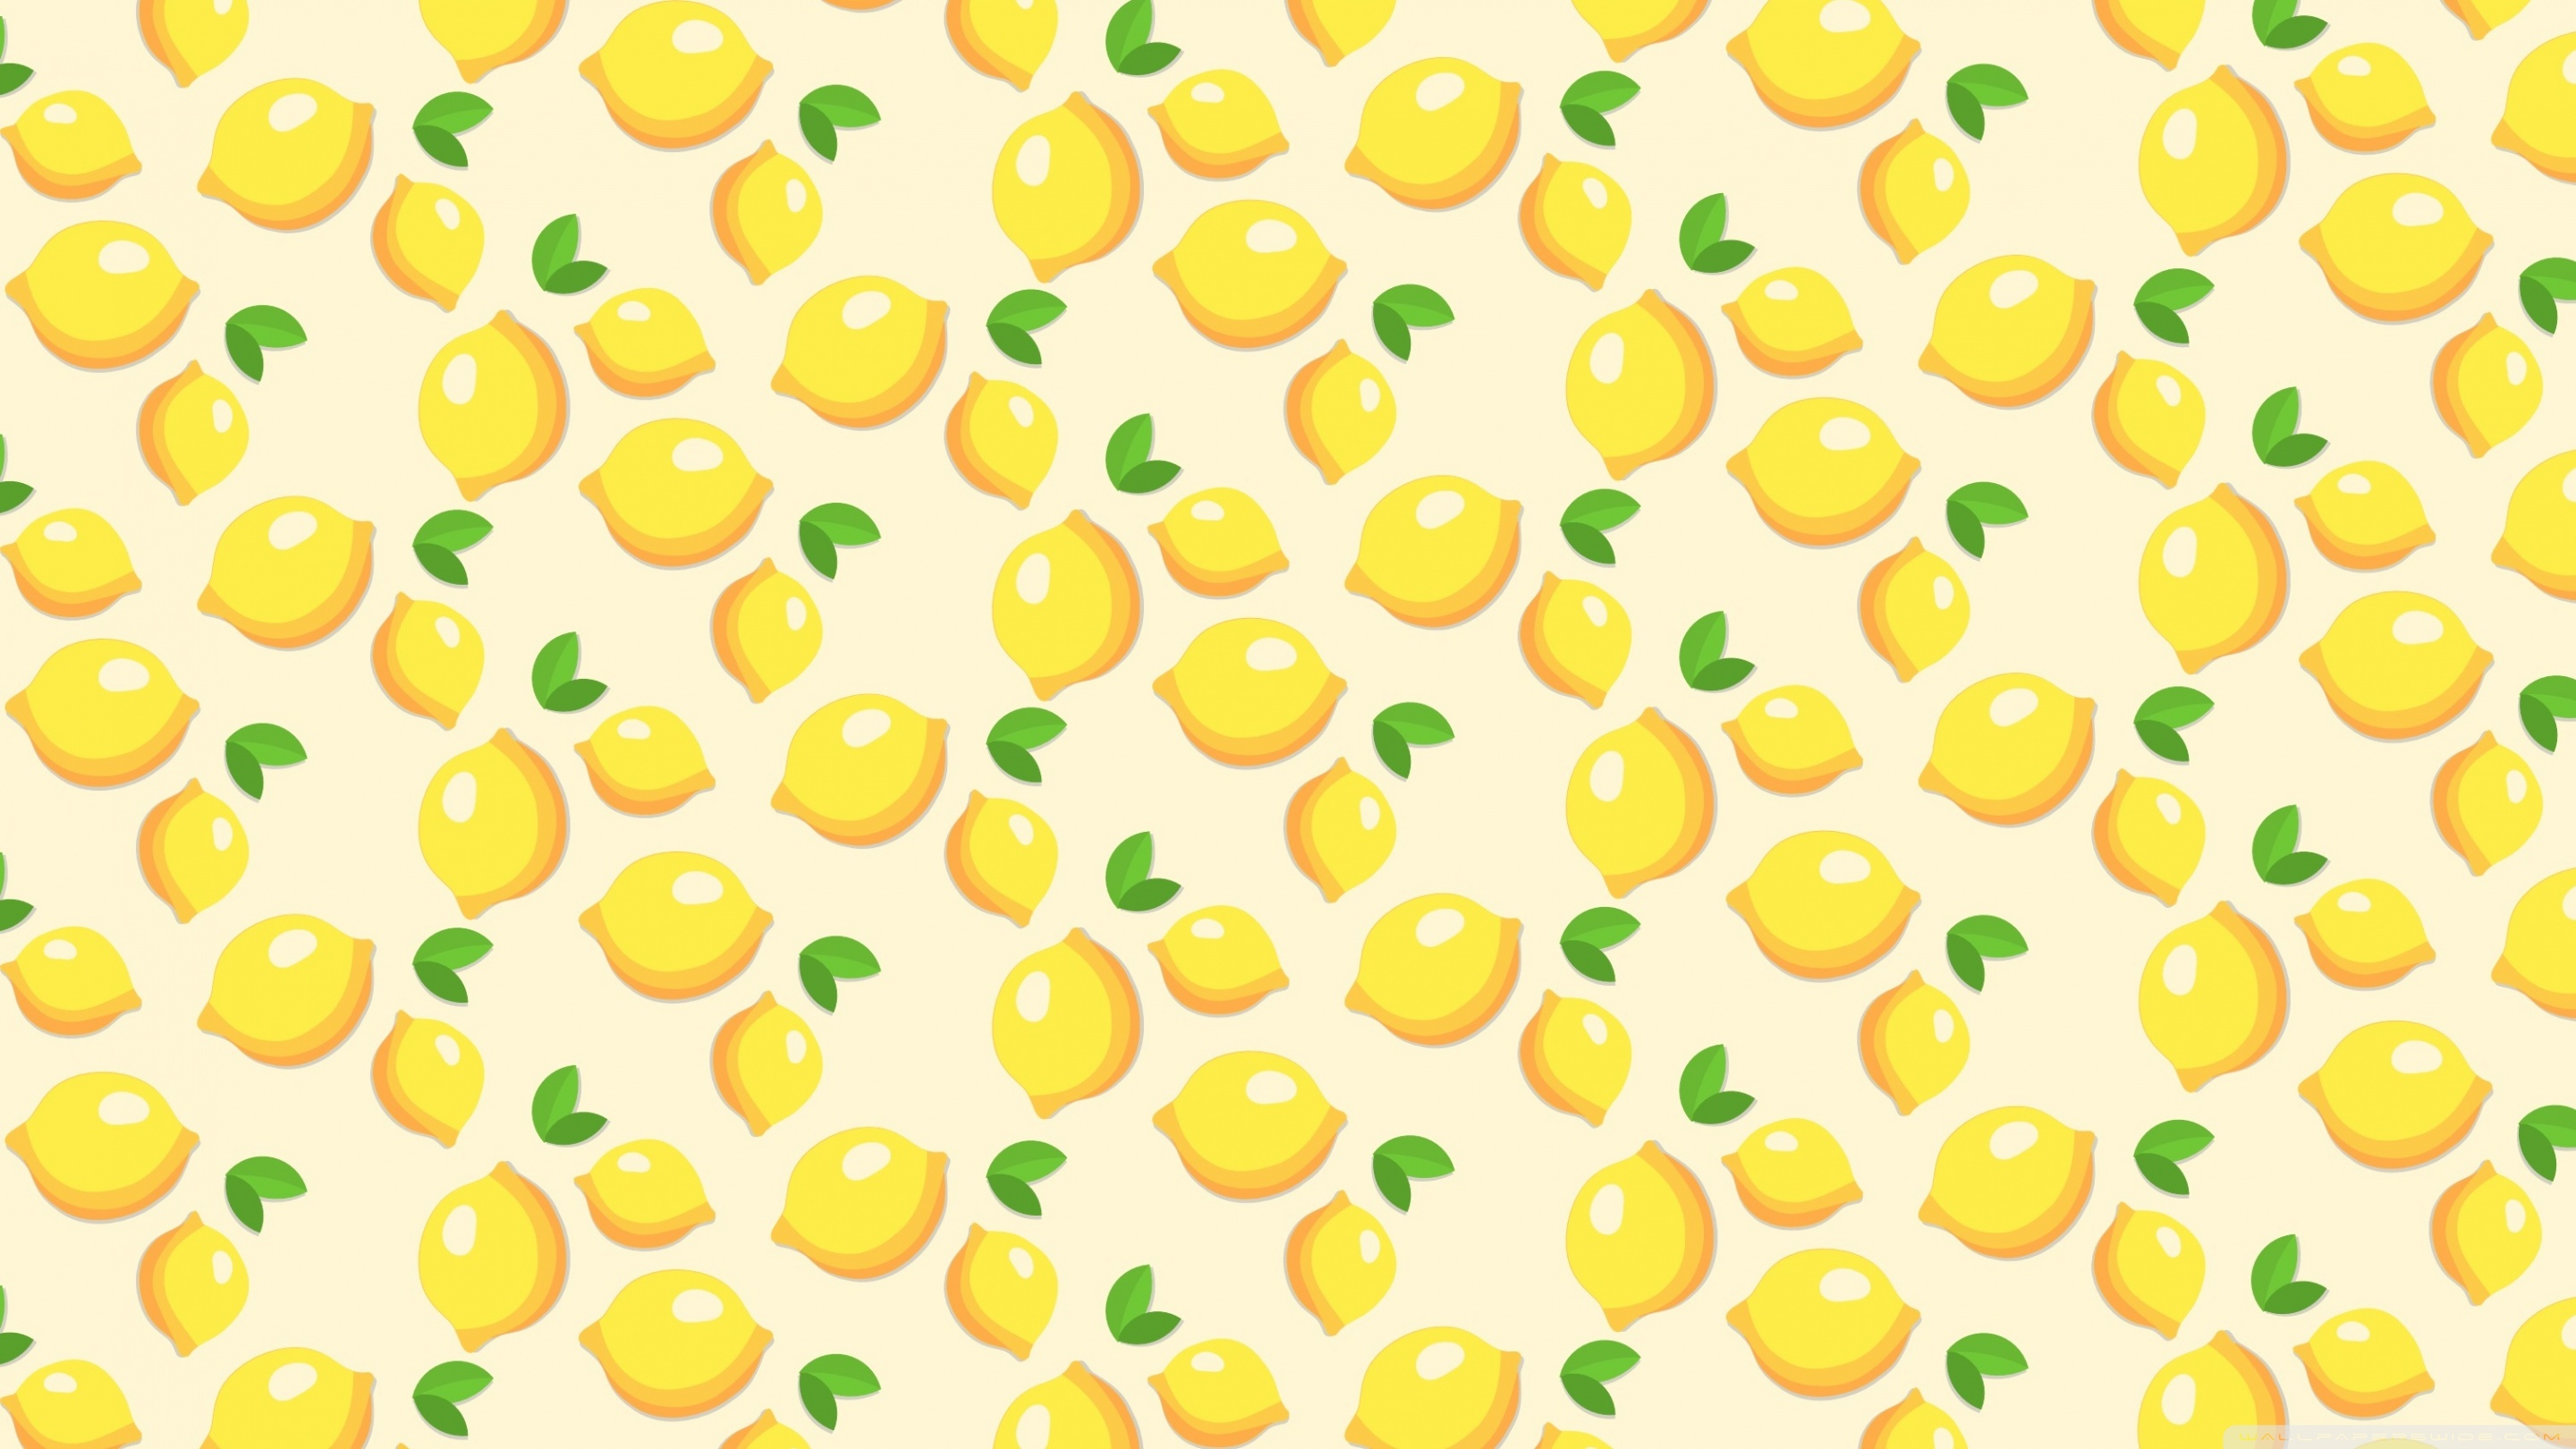 Desktop Wallpaper Patterns